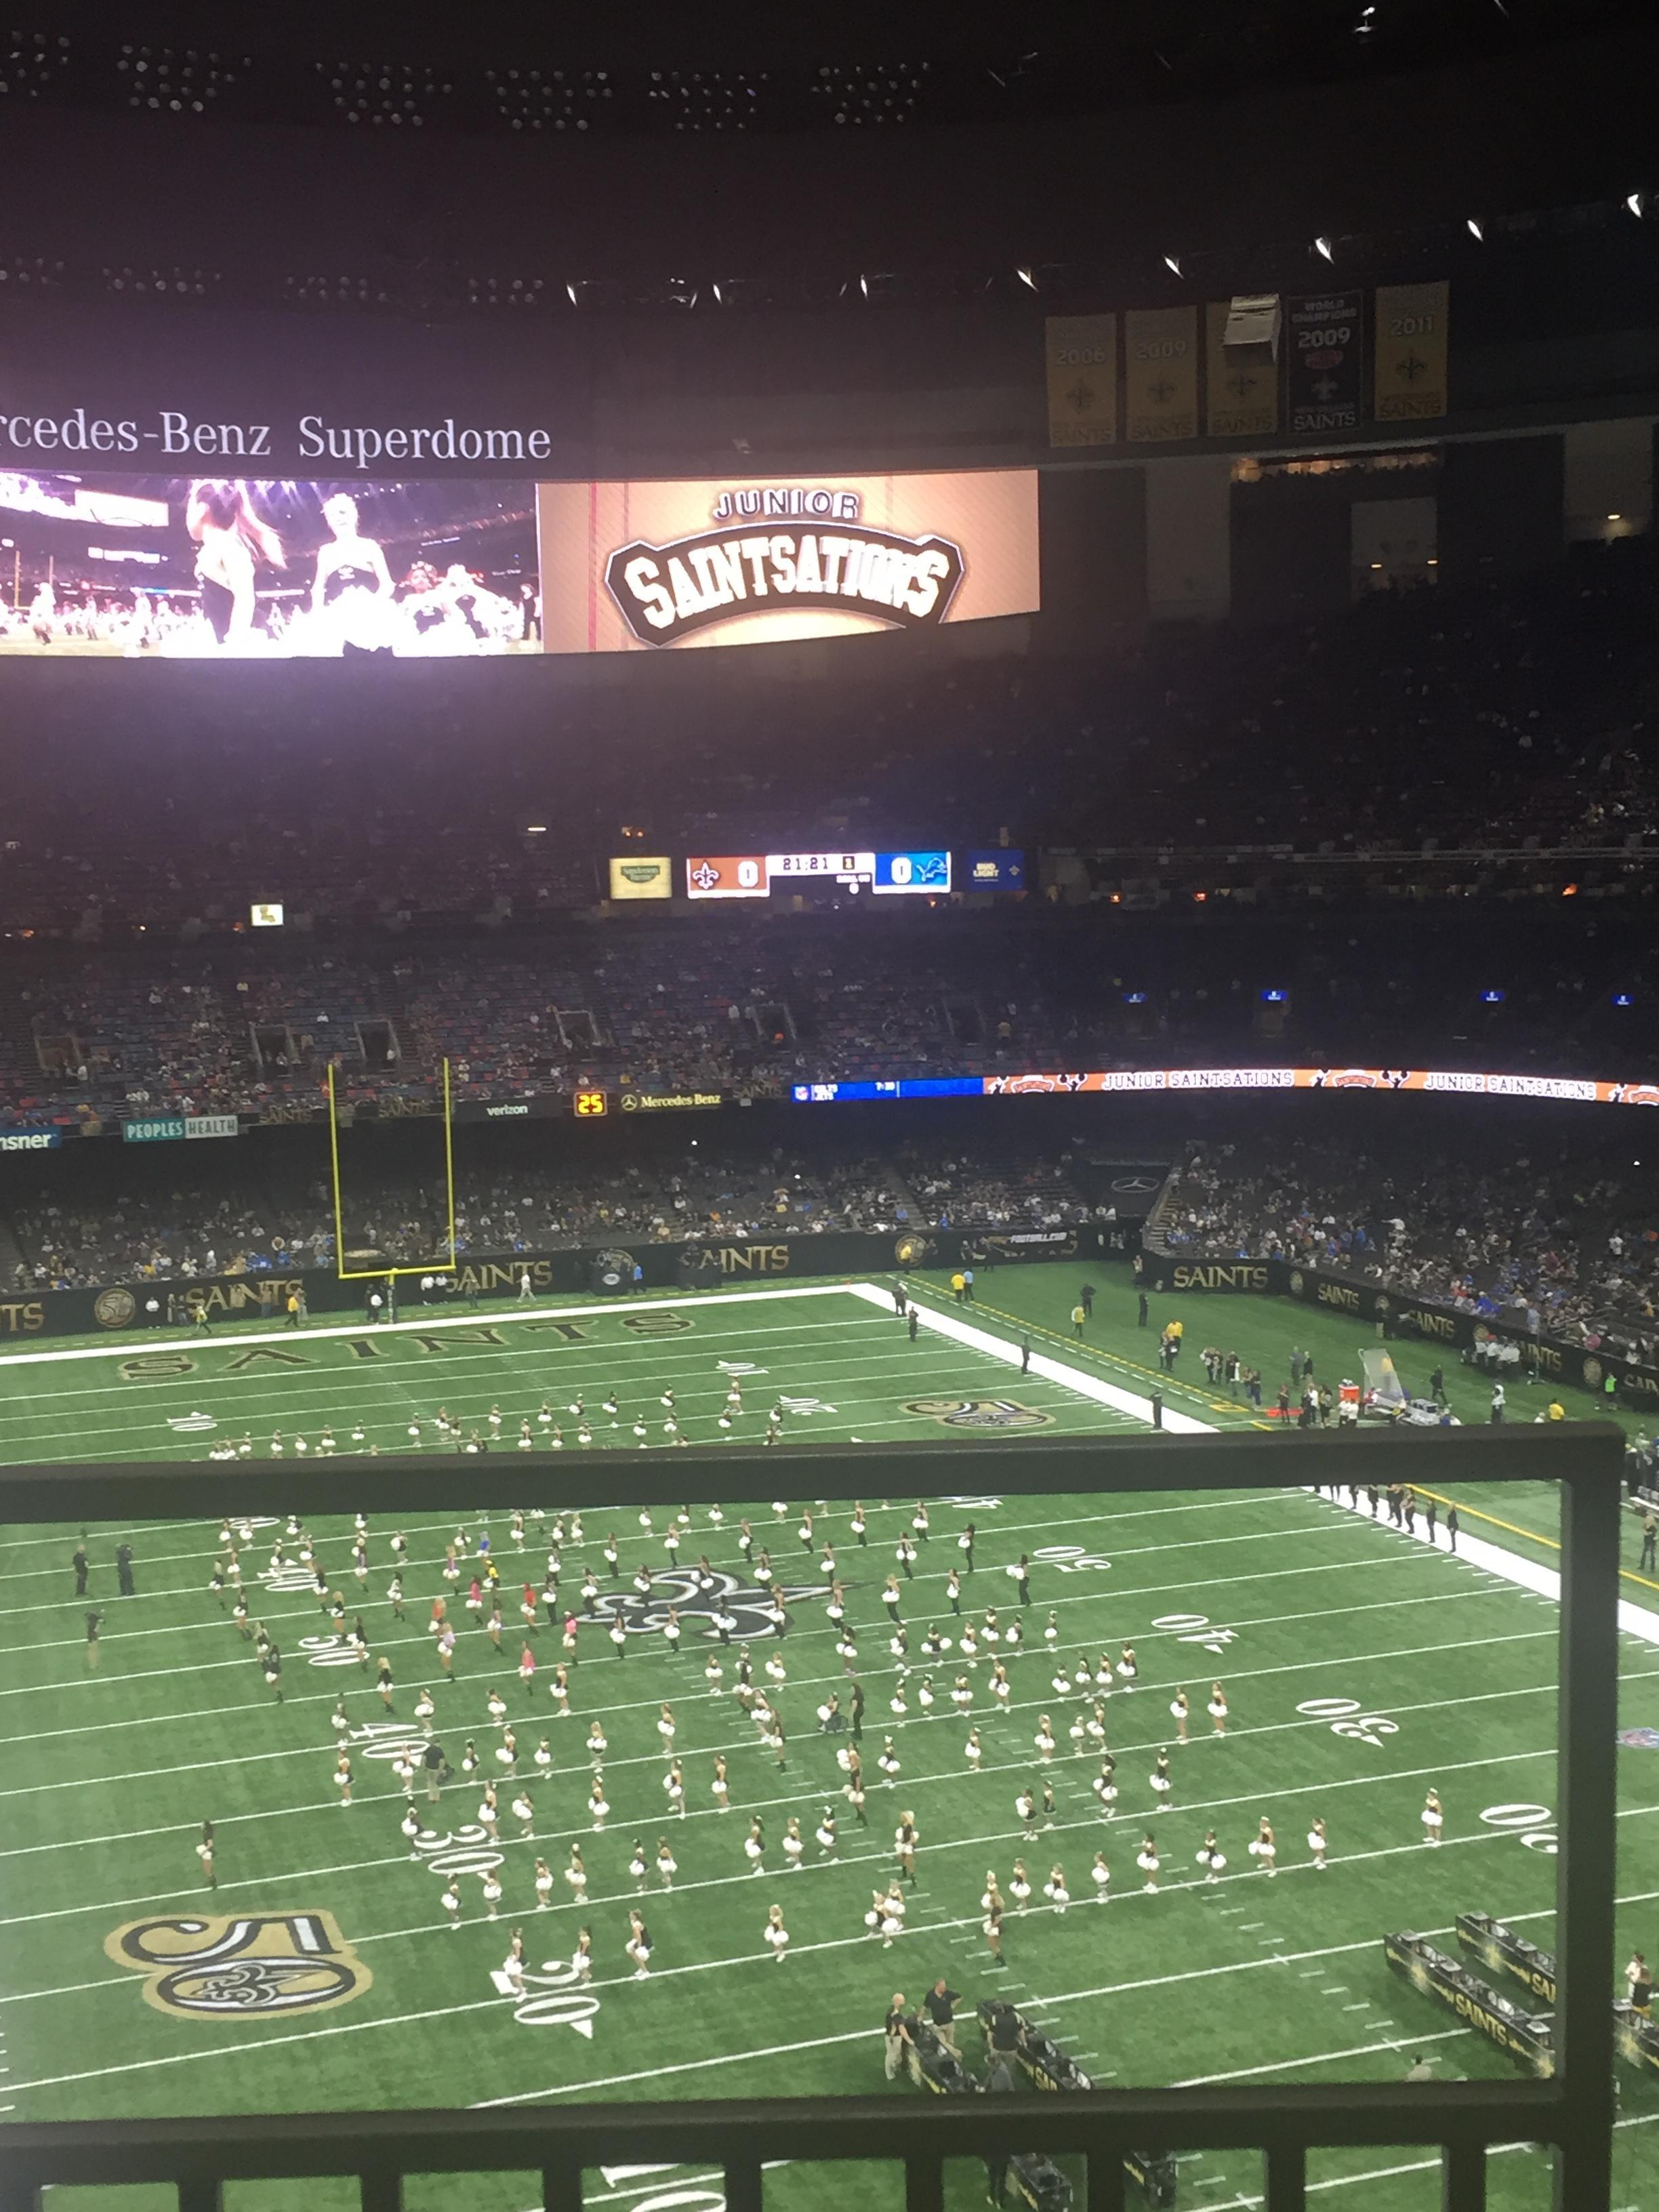 Mercedes-Benz Superdome Section 630 Row 3 Seat 4